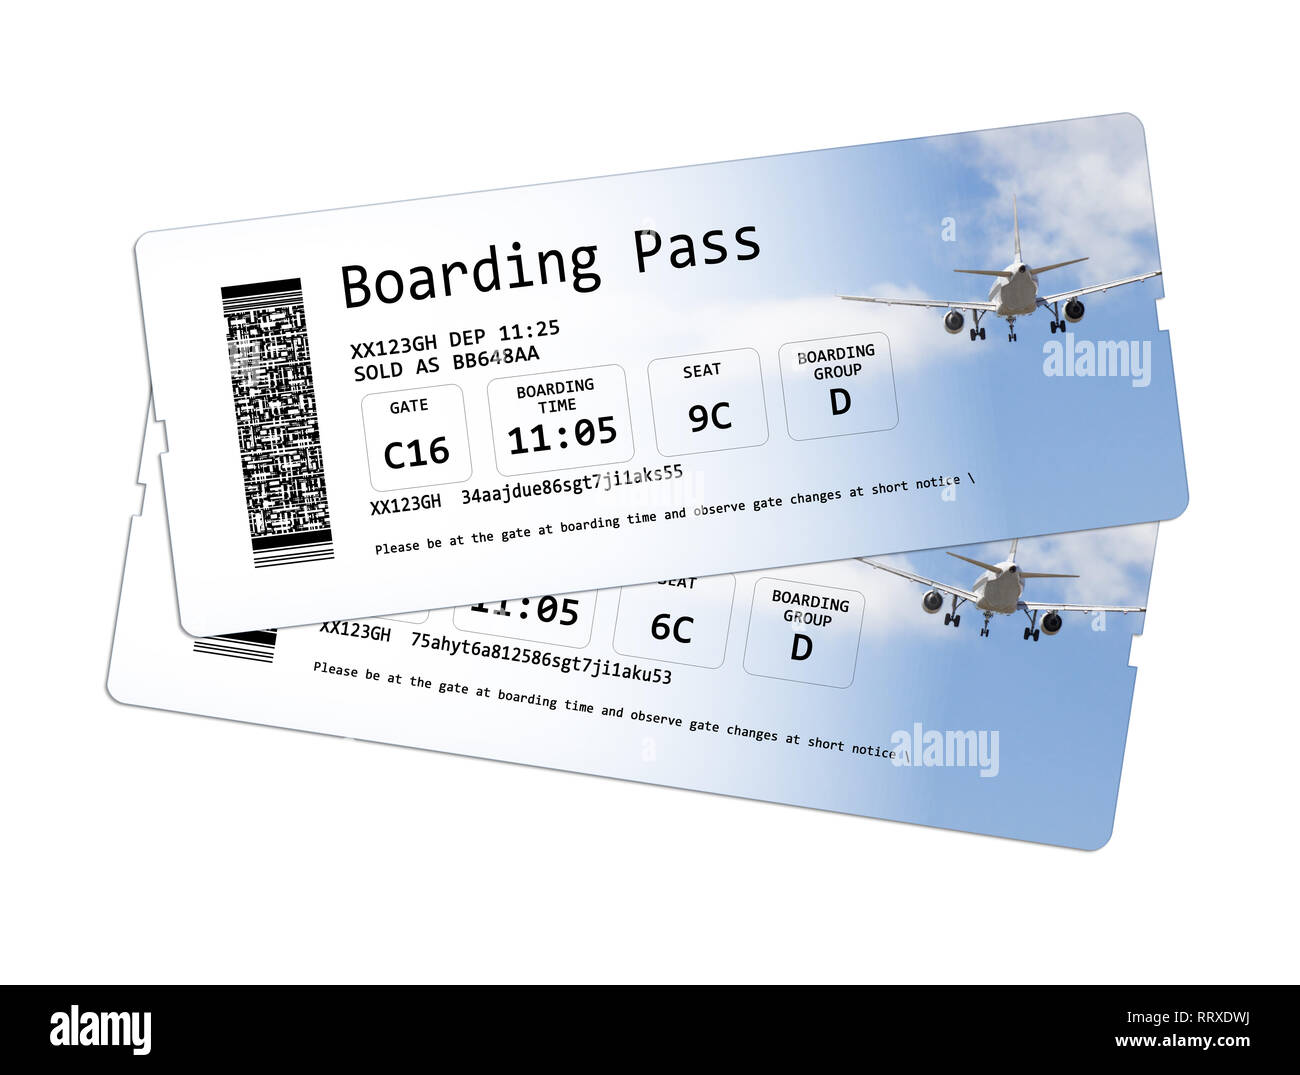 767dc66227c Airline boarding pass tickets isolated on white The image is totally  invented and does not contain